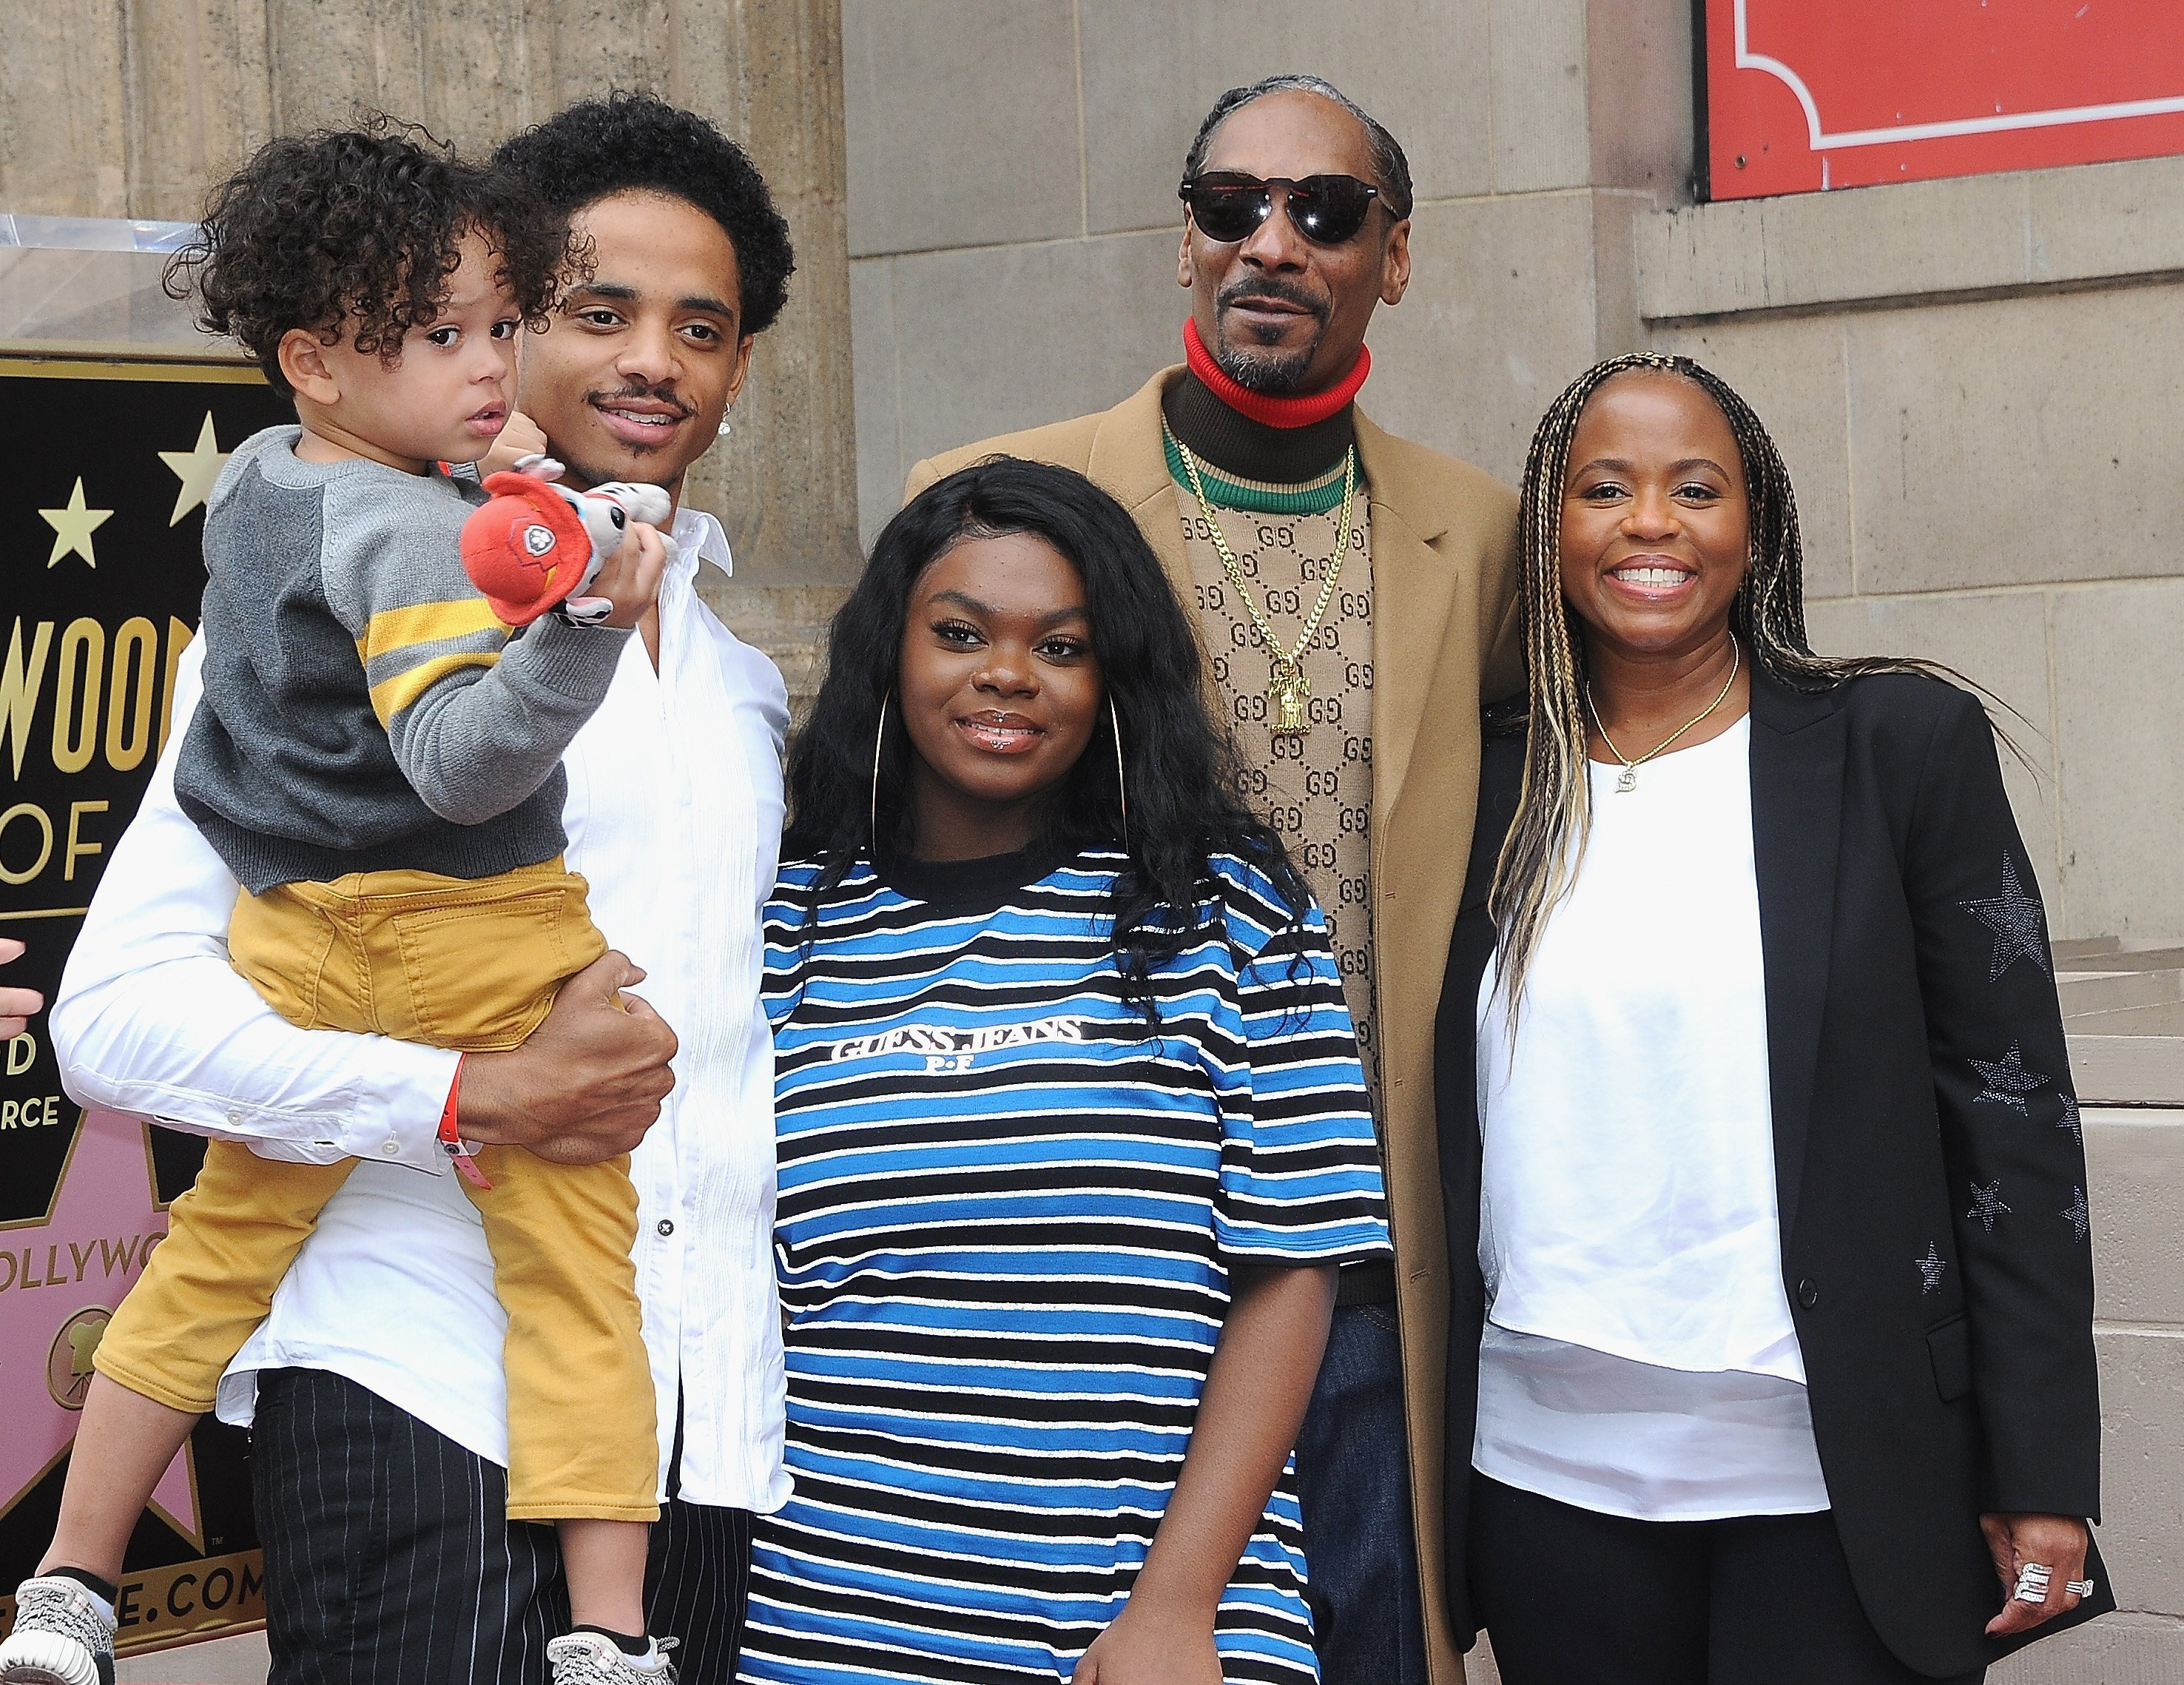 Snoop Dogg and Shante Taylor with family attends Snoop Dogg's star ceremony on The Hollywood Walk of Fame held on November 19, 2018 | Photo: Getty Images